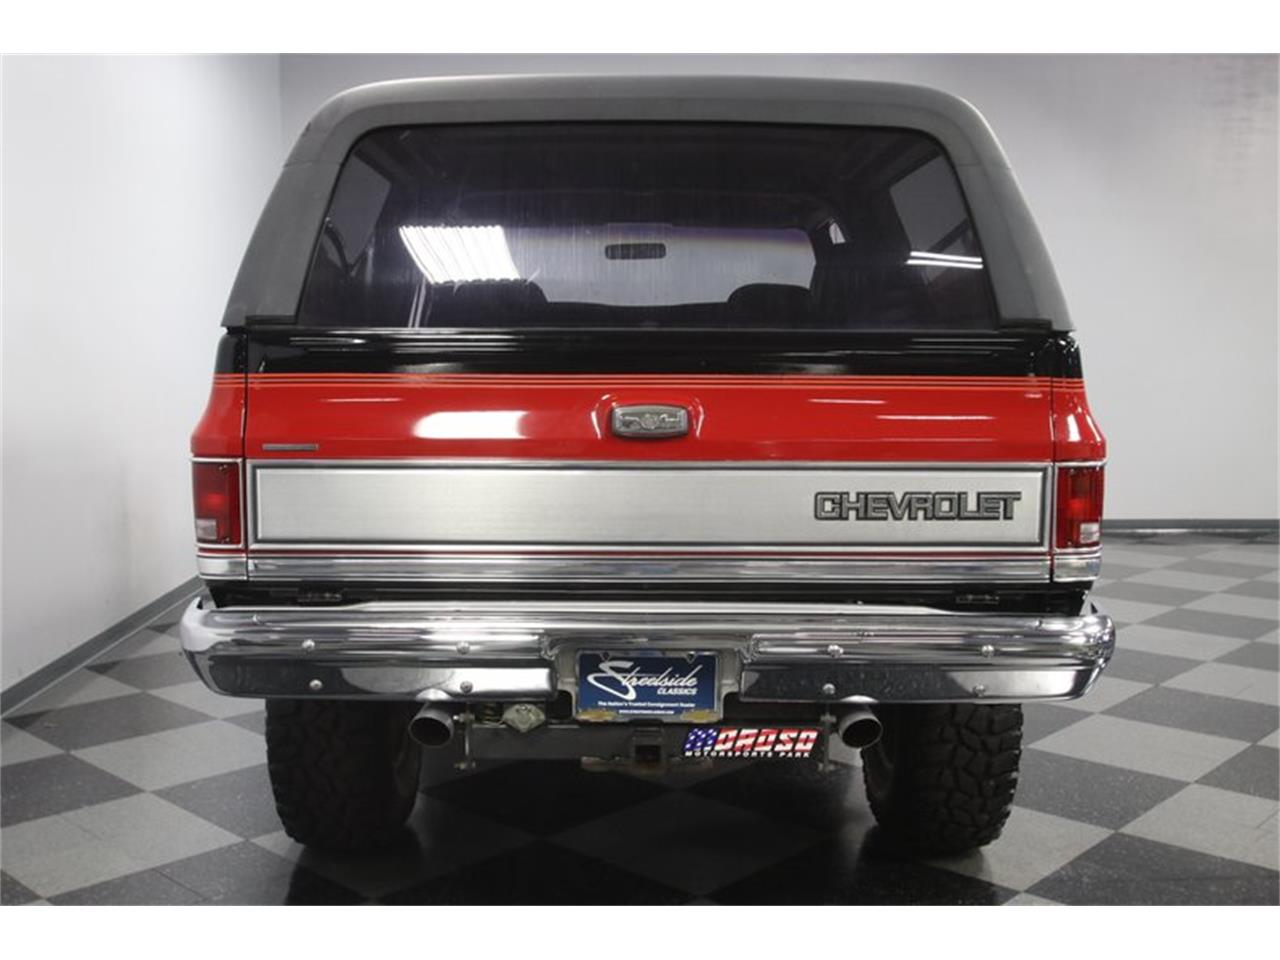 Large Picture of '88 Chevrolet Blazer located in North Carolina - QEFQ